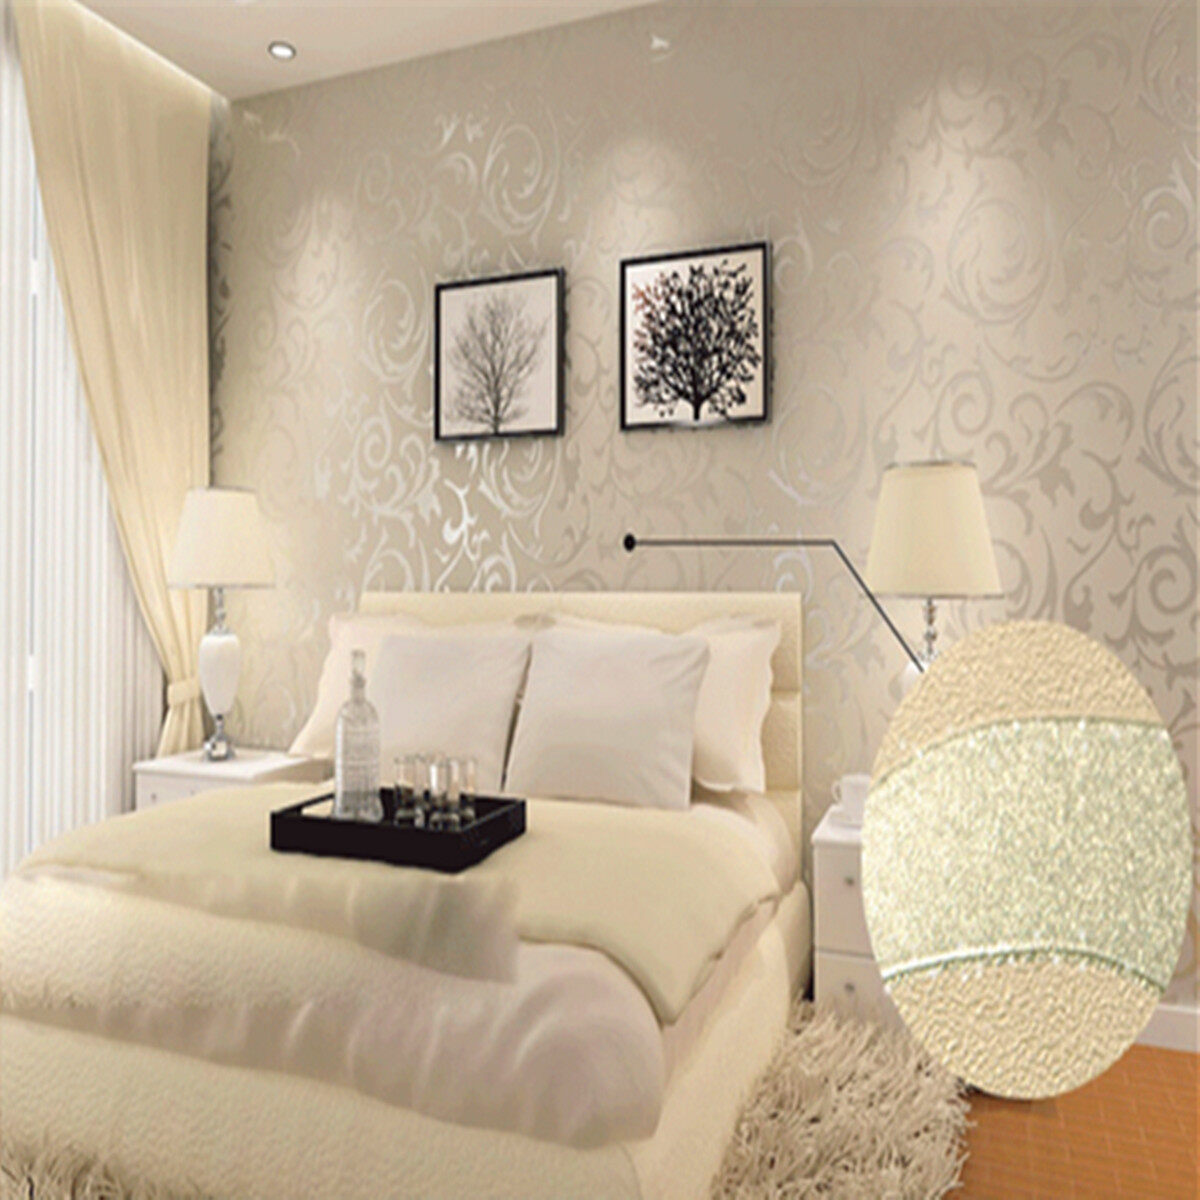 Silver Wallpaper For Bedroom Wallpaper Roll Damask Textured Embossed Home Decor 10m Silver